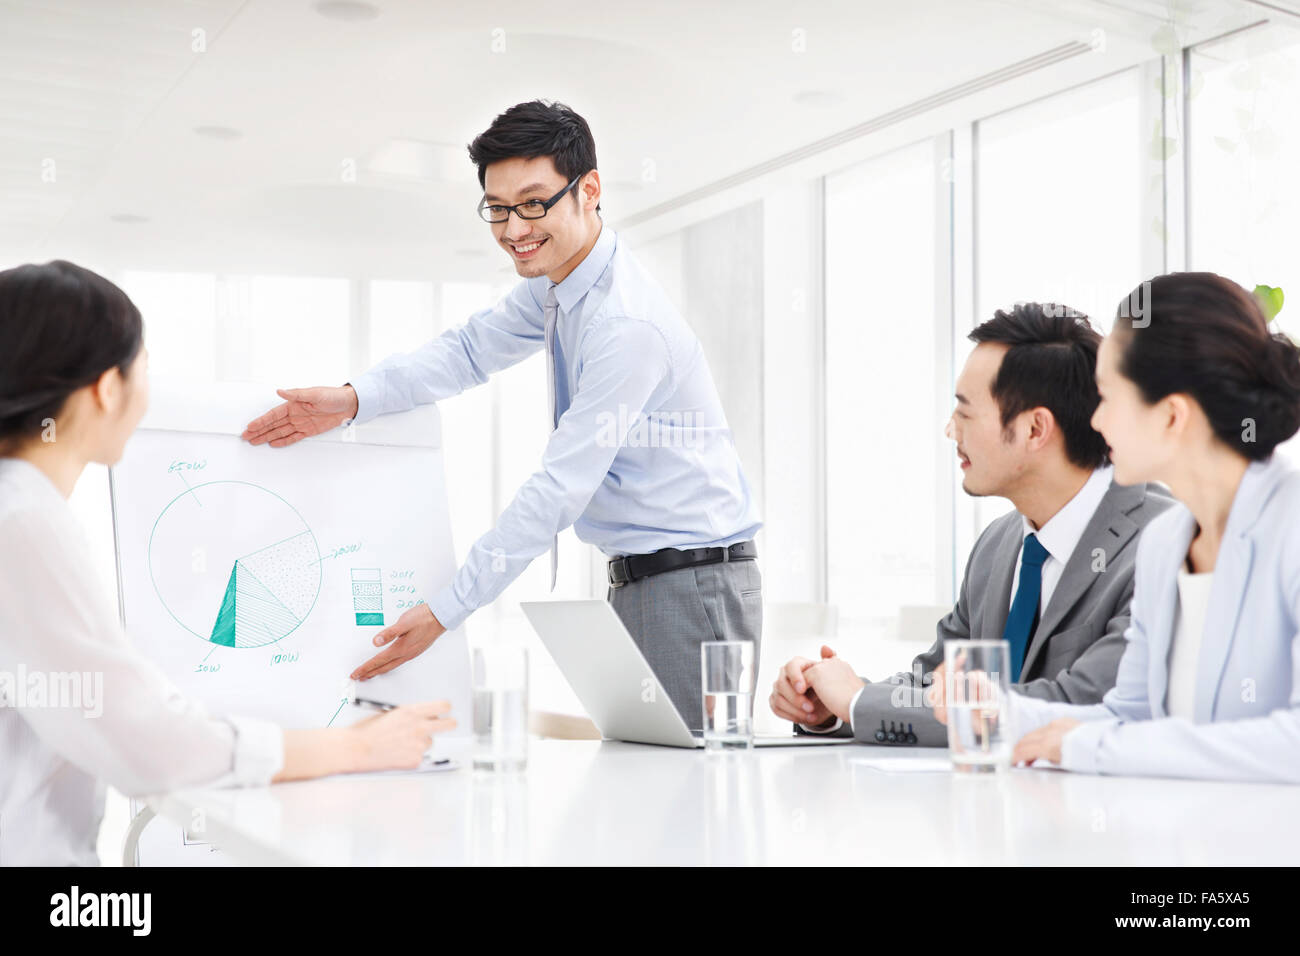 Business team meeting in conference room - Stock Image